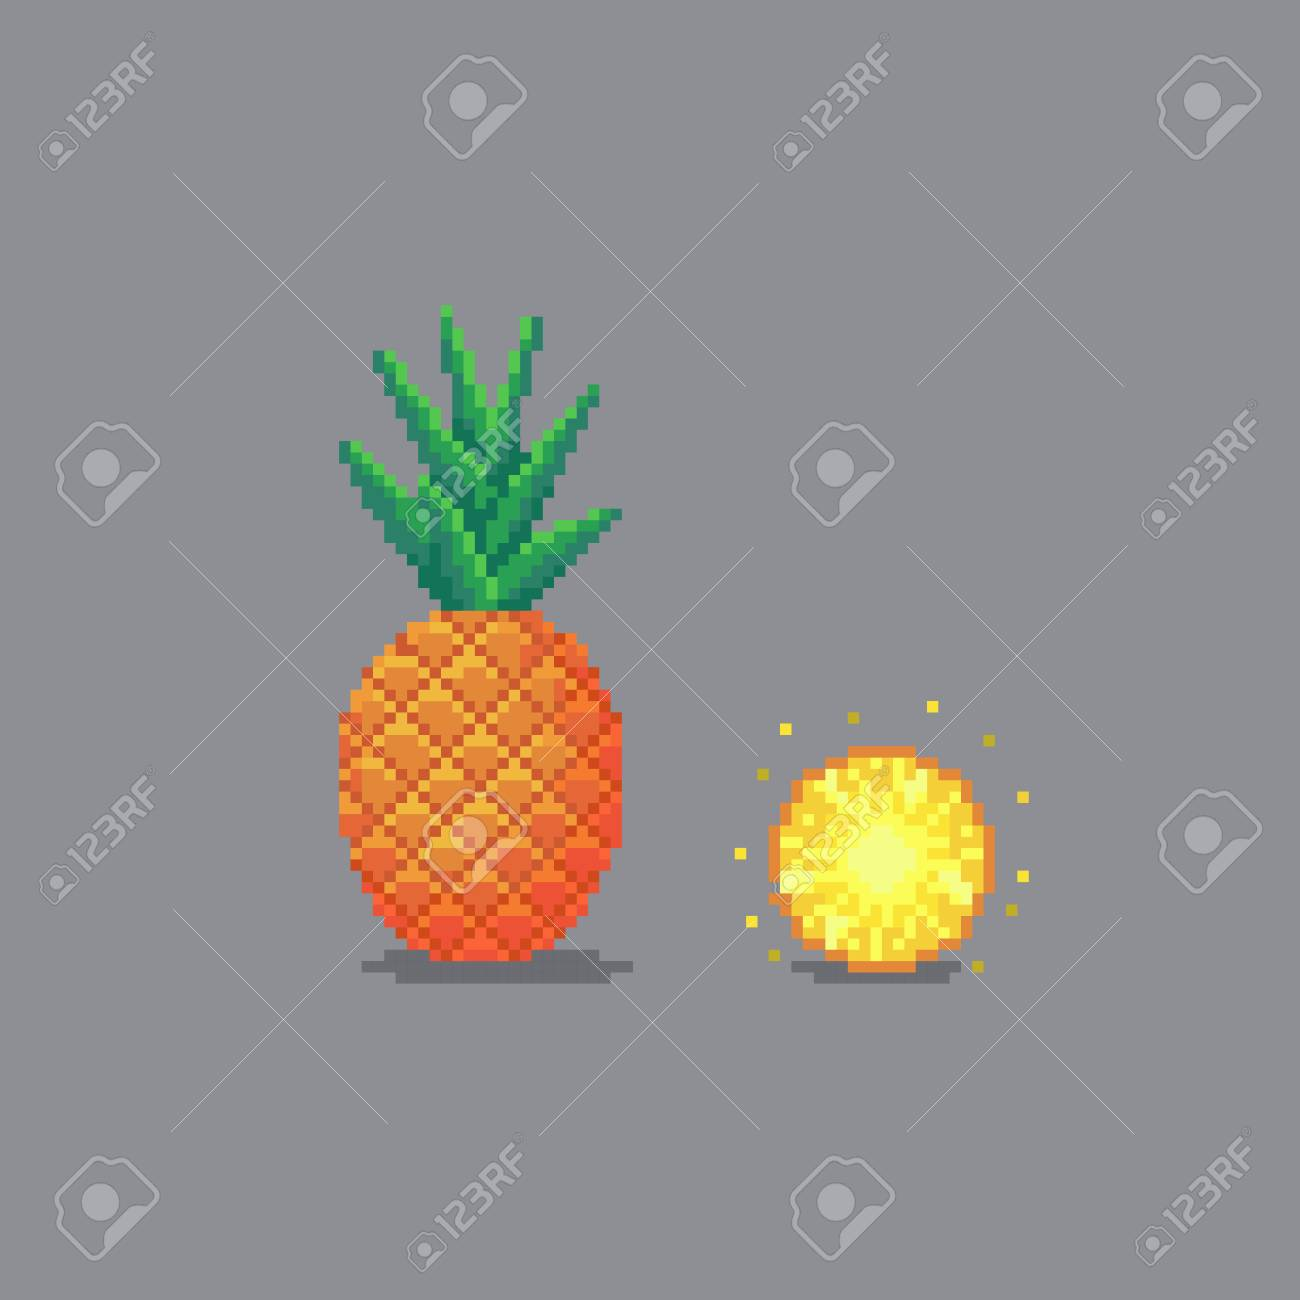 Pixel Art Style Pineapple Illustration Isolated On Gray Background